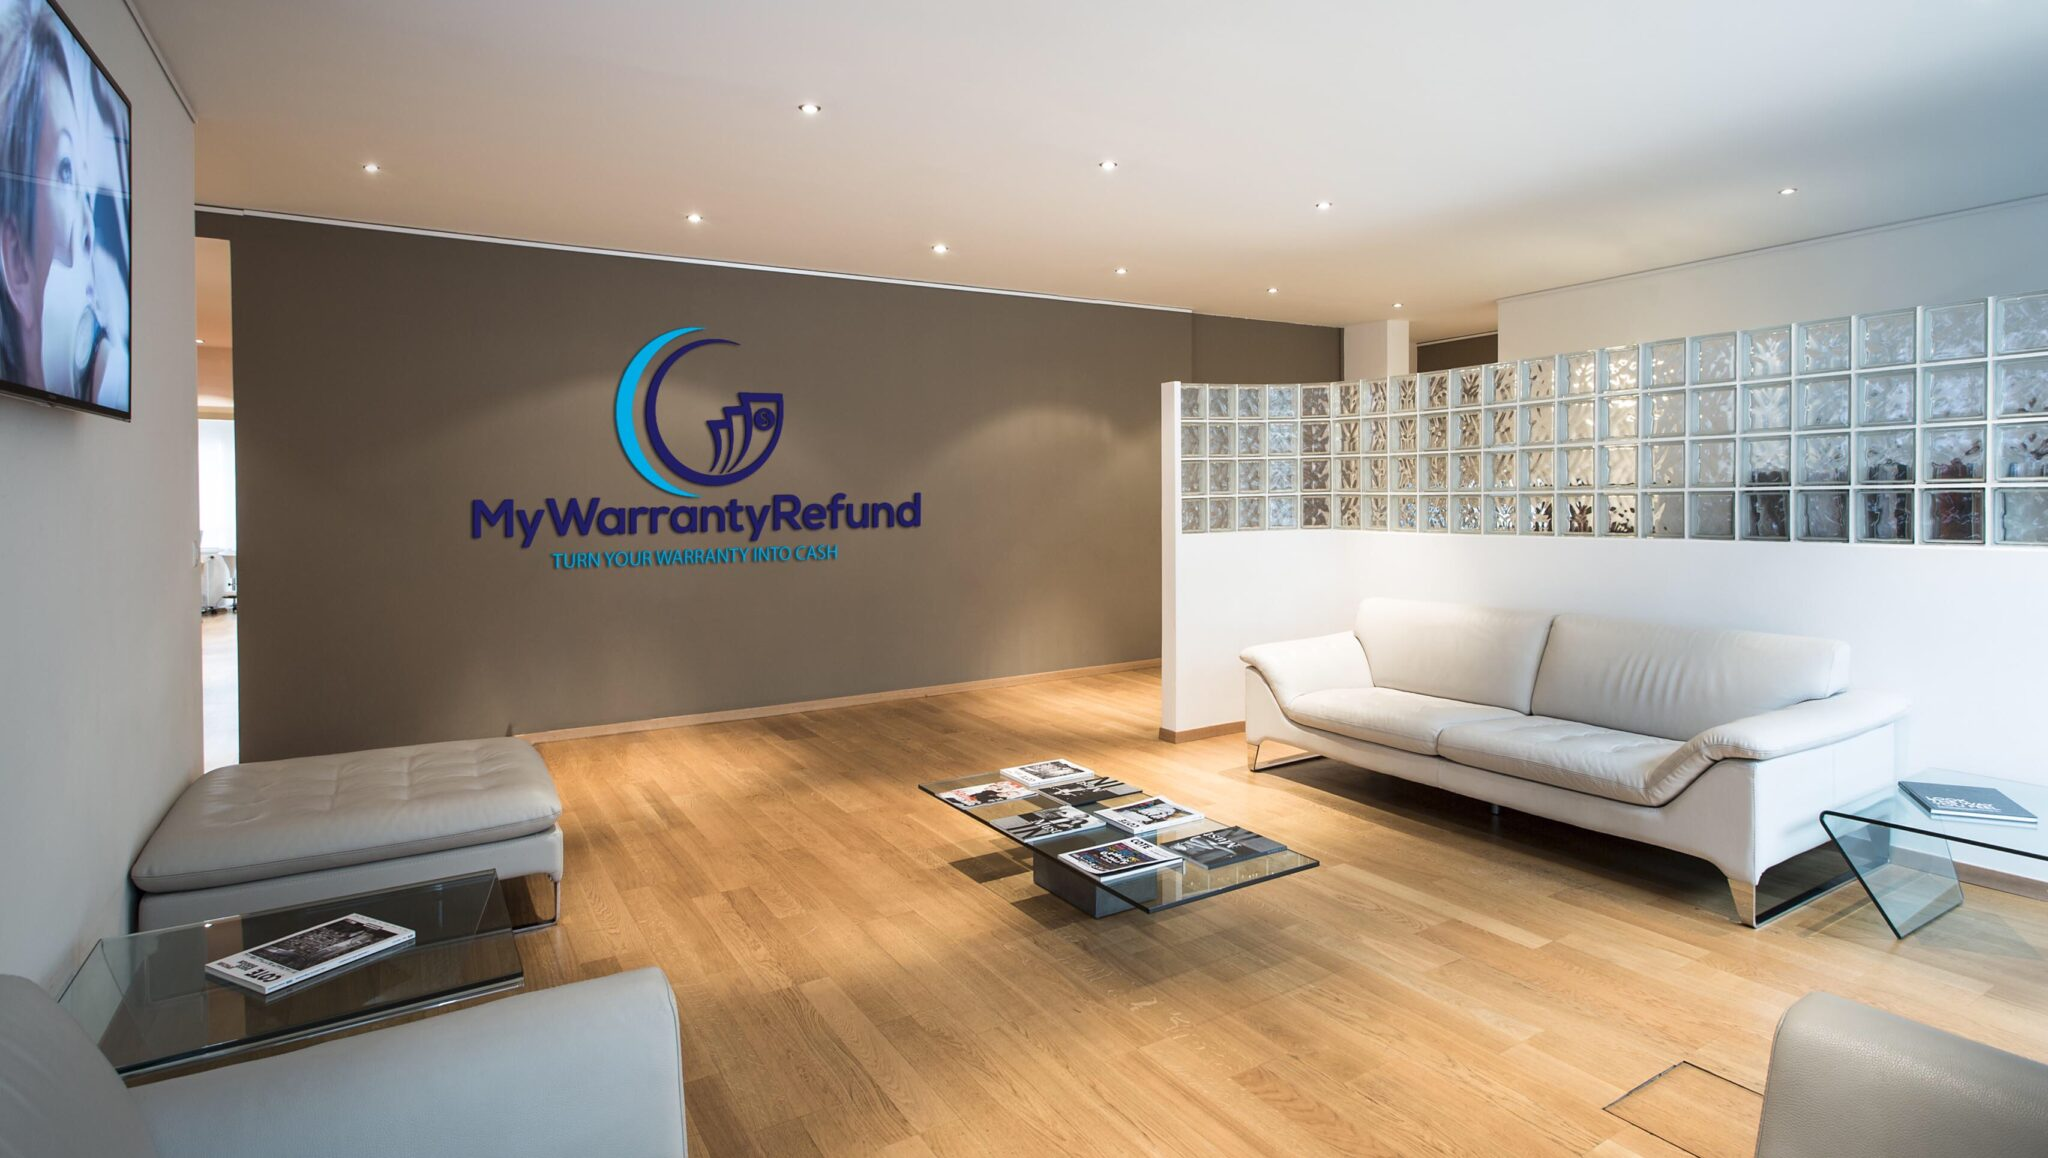 refunds for extended warranties gap insurance my warranty refund. Black Bedroom Furniture Sets. Home Design Ideas